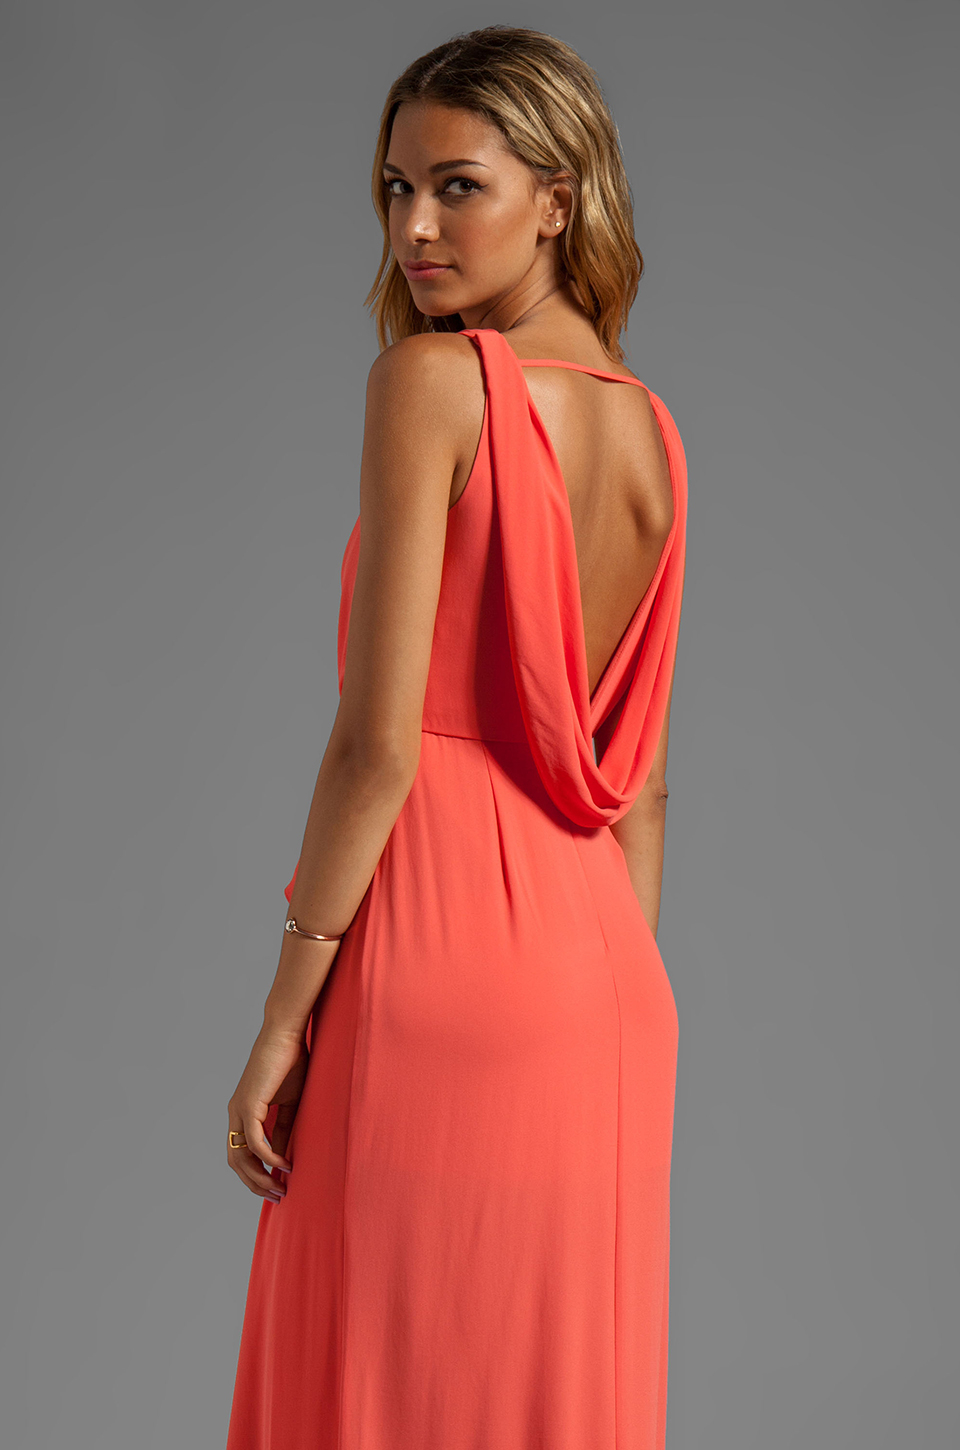 BCBGMAXAZRIA Drape Neck Maxi Dress in Coral in Red - Lyst